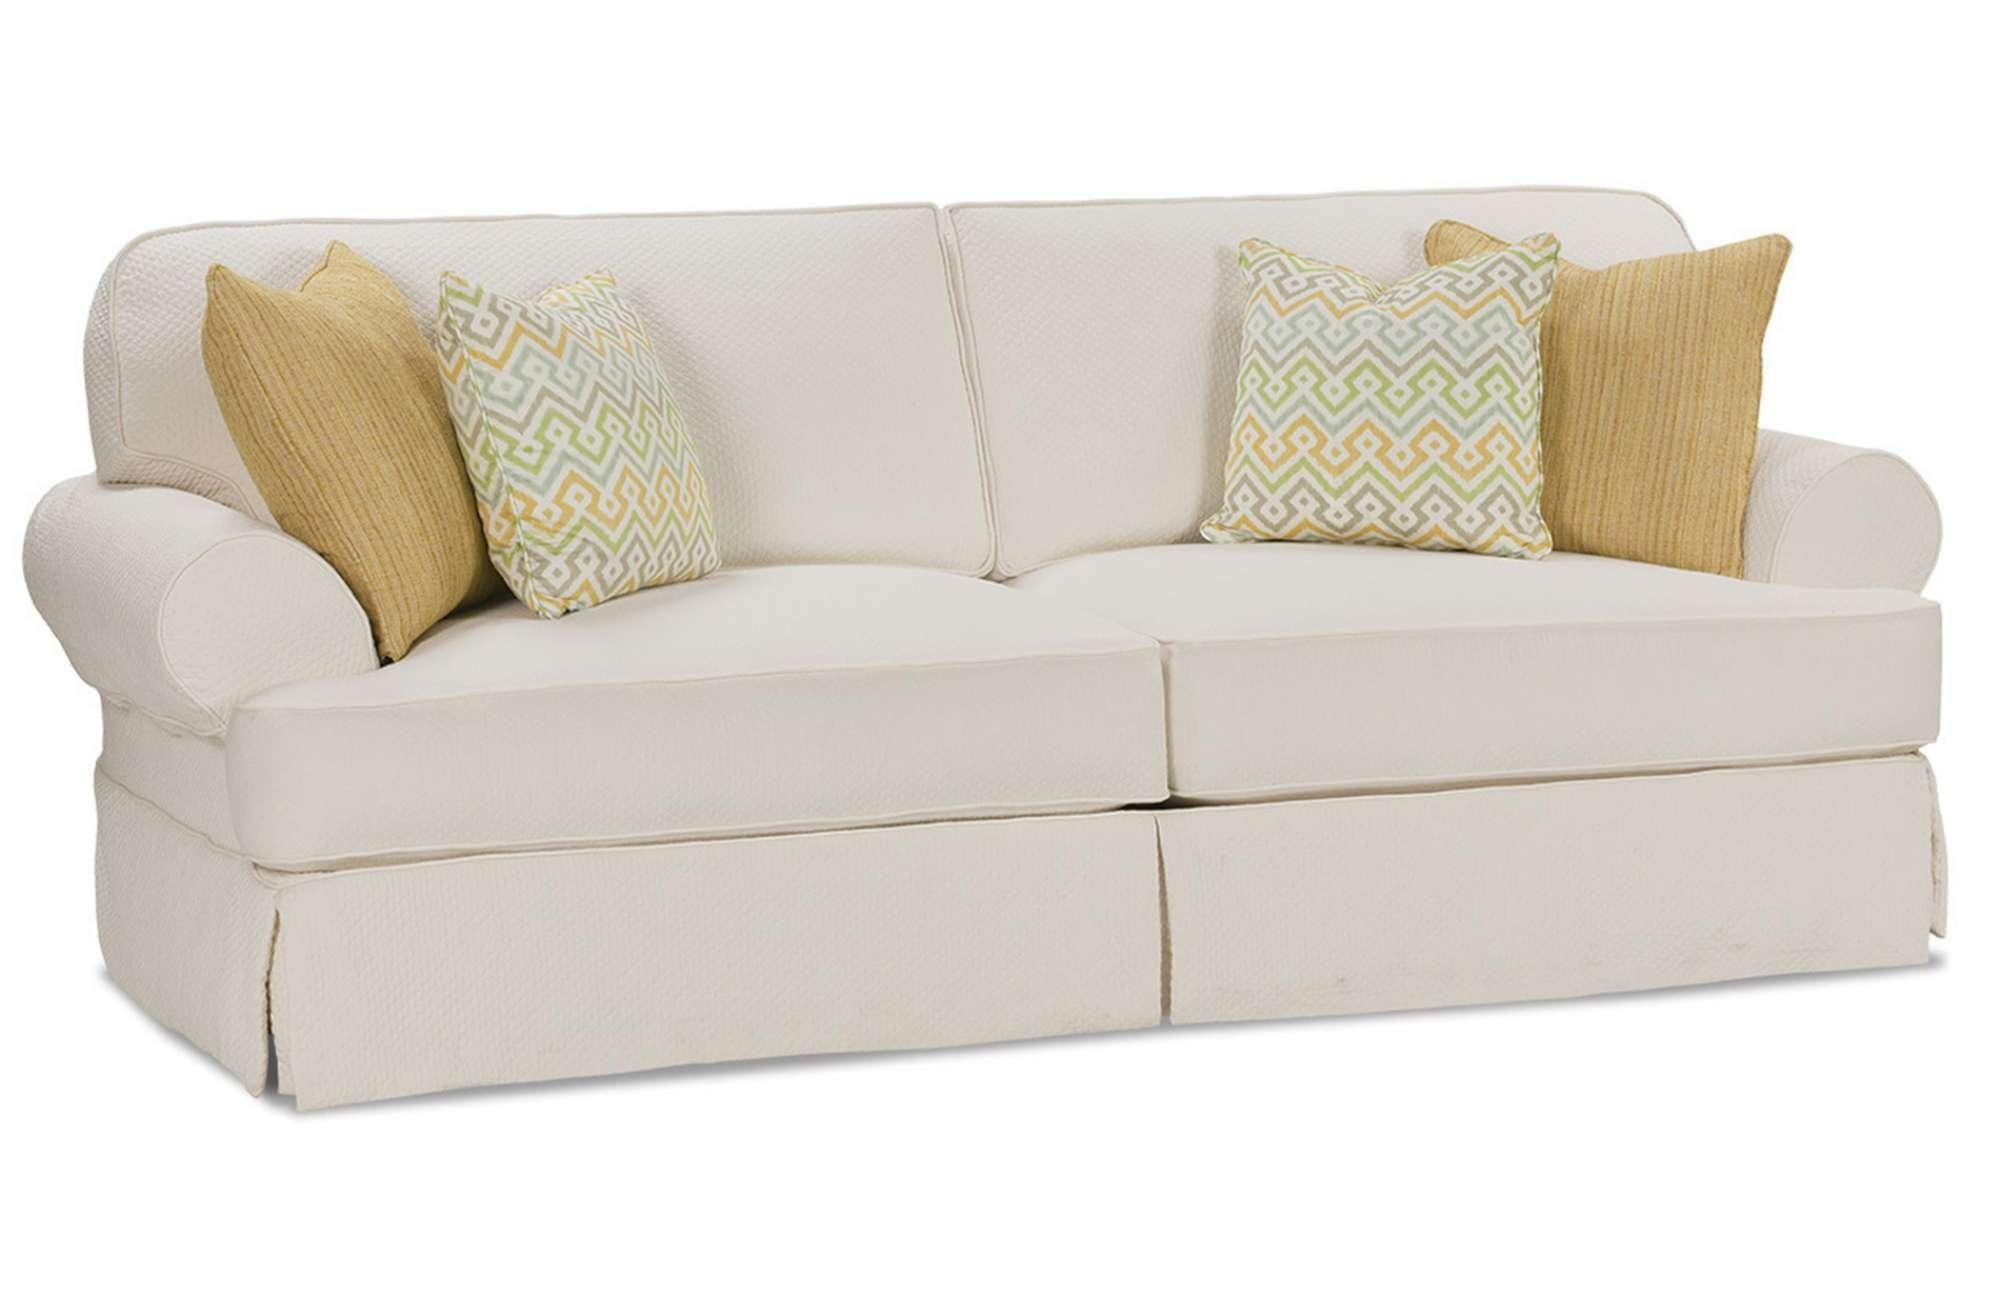 20 Inspirations Sofa With Washable Covers Sofa Ideas